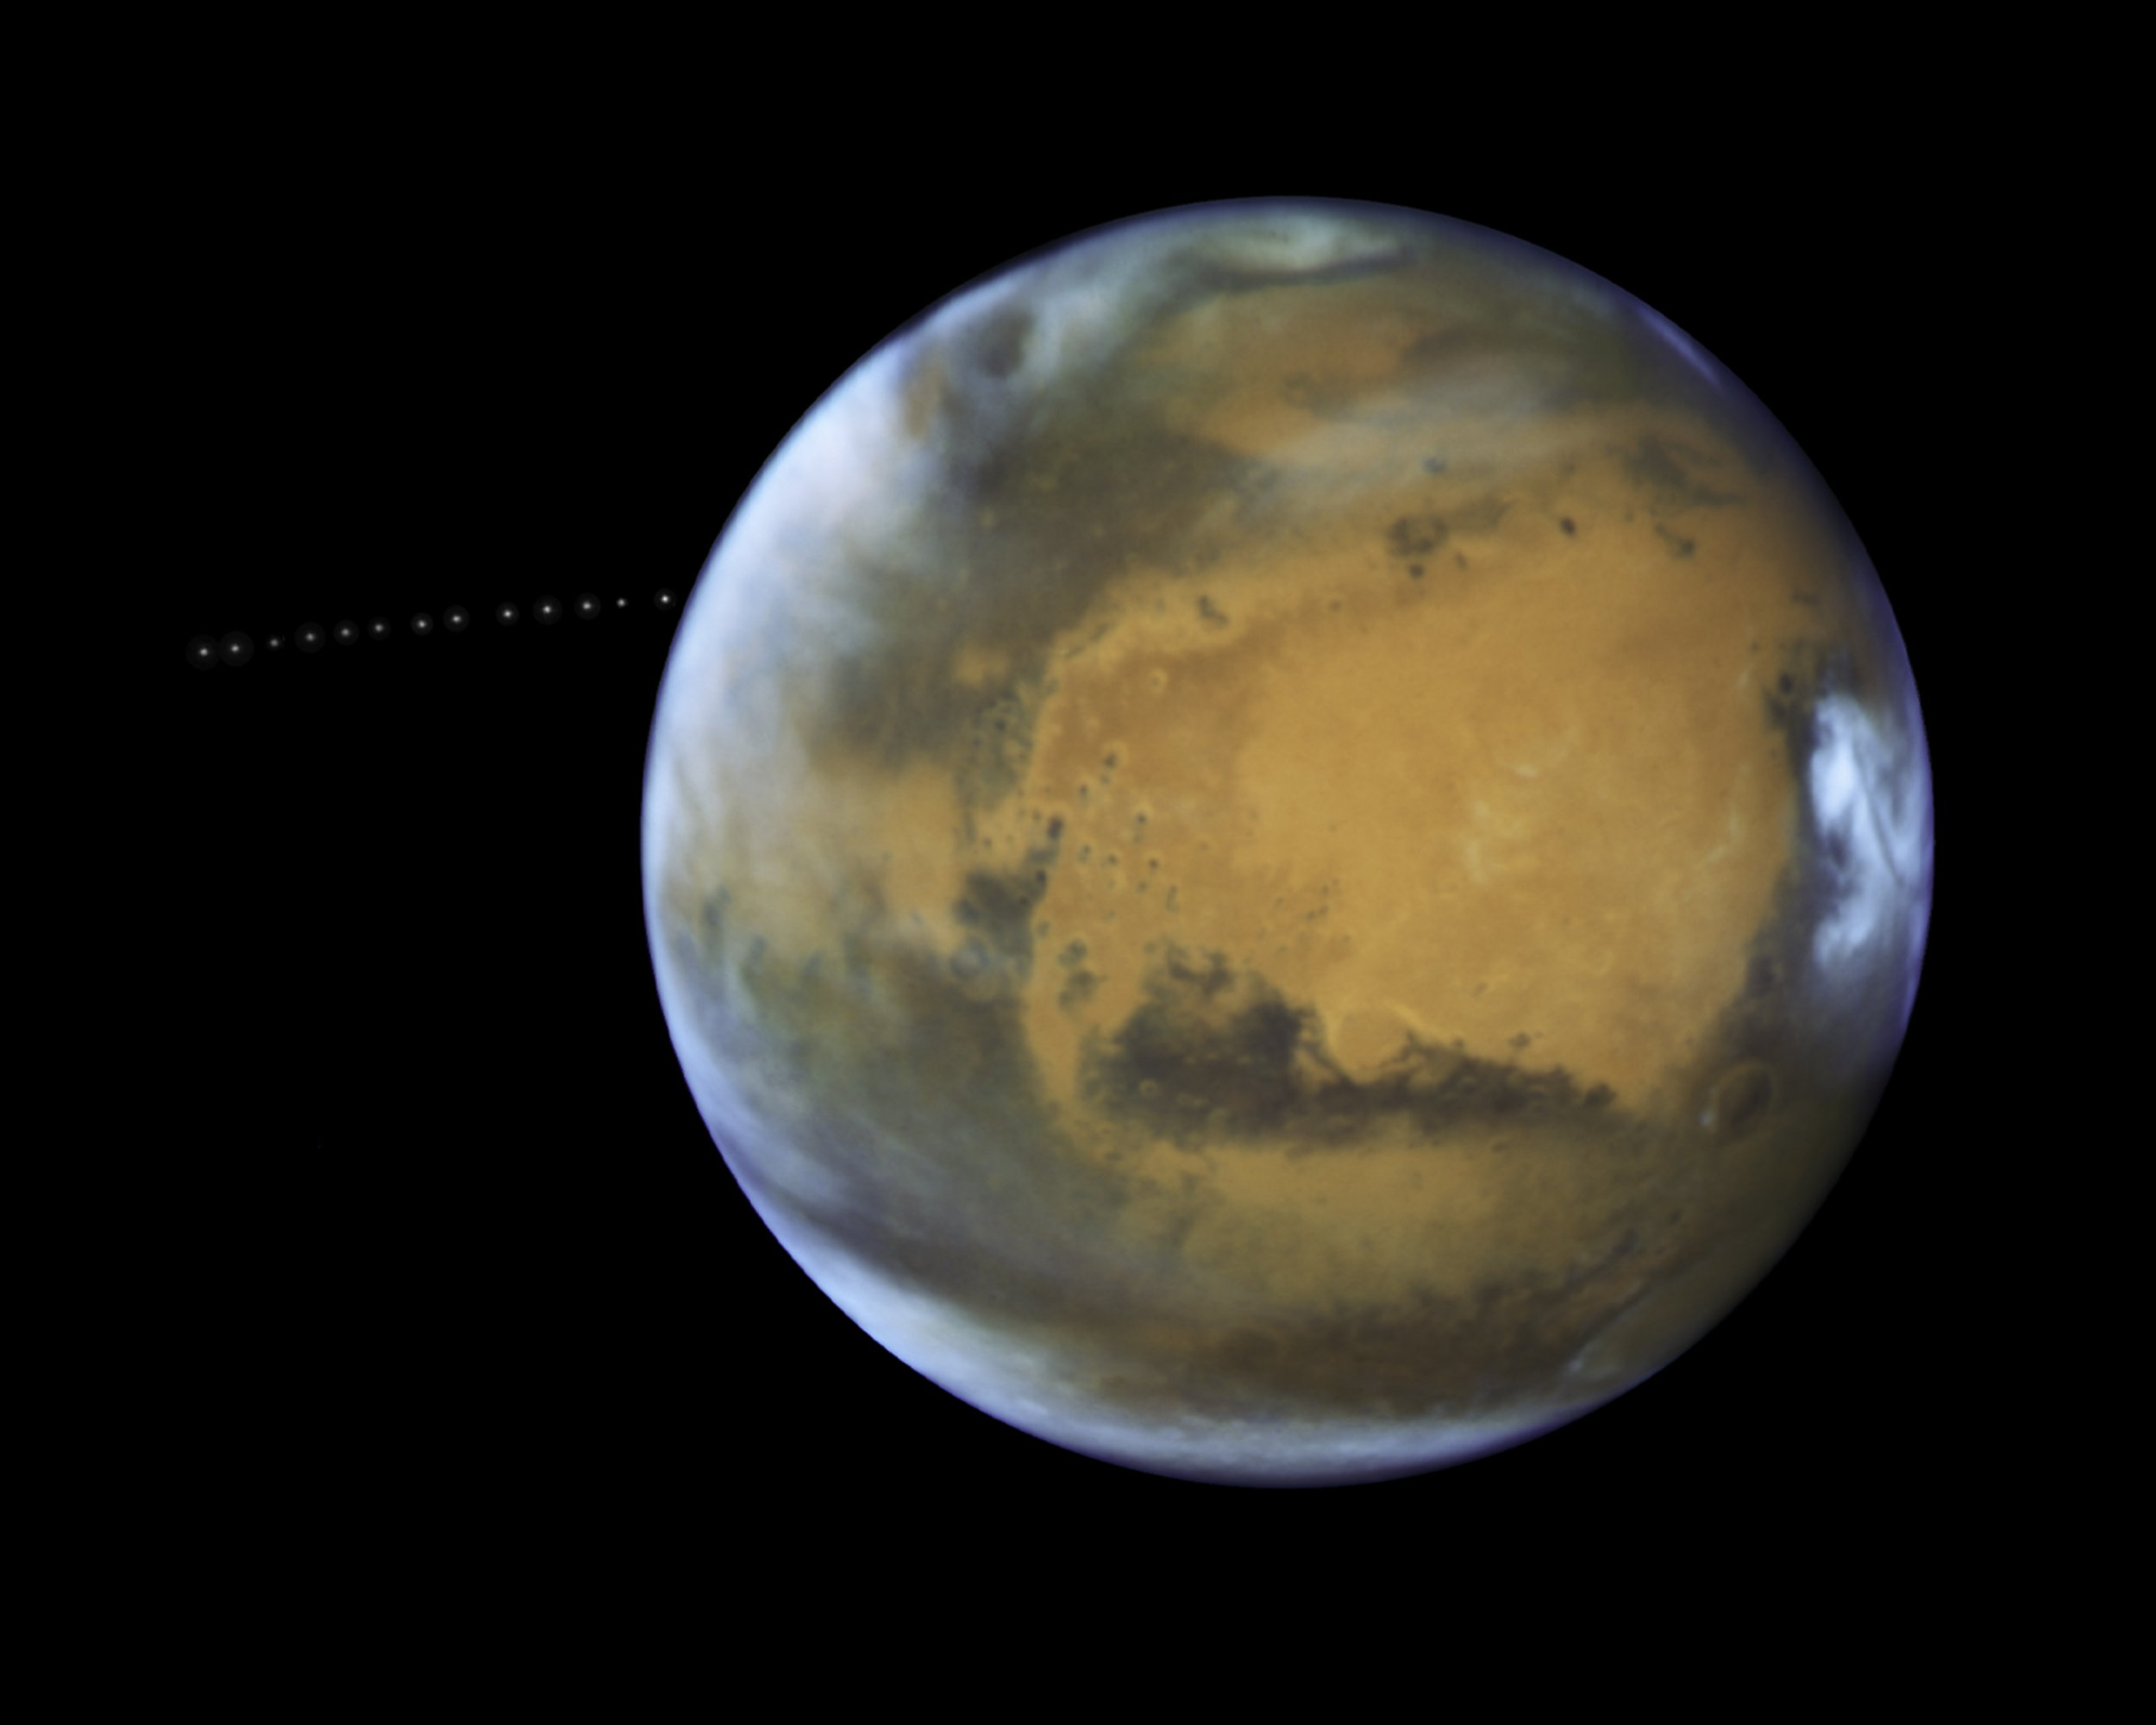 Mars moon Phobos orbits the red planet in a beautiful time-lapse captured by Hubble